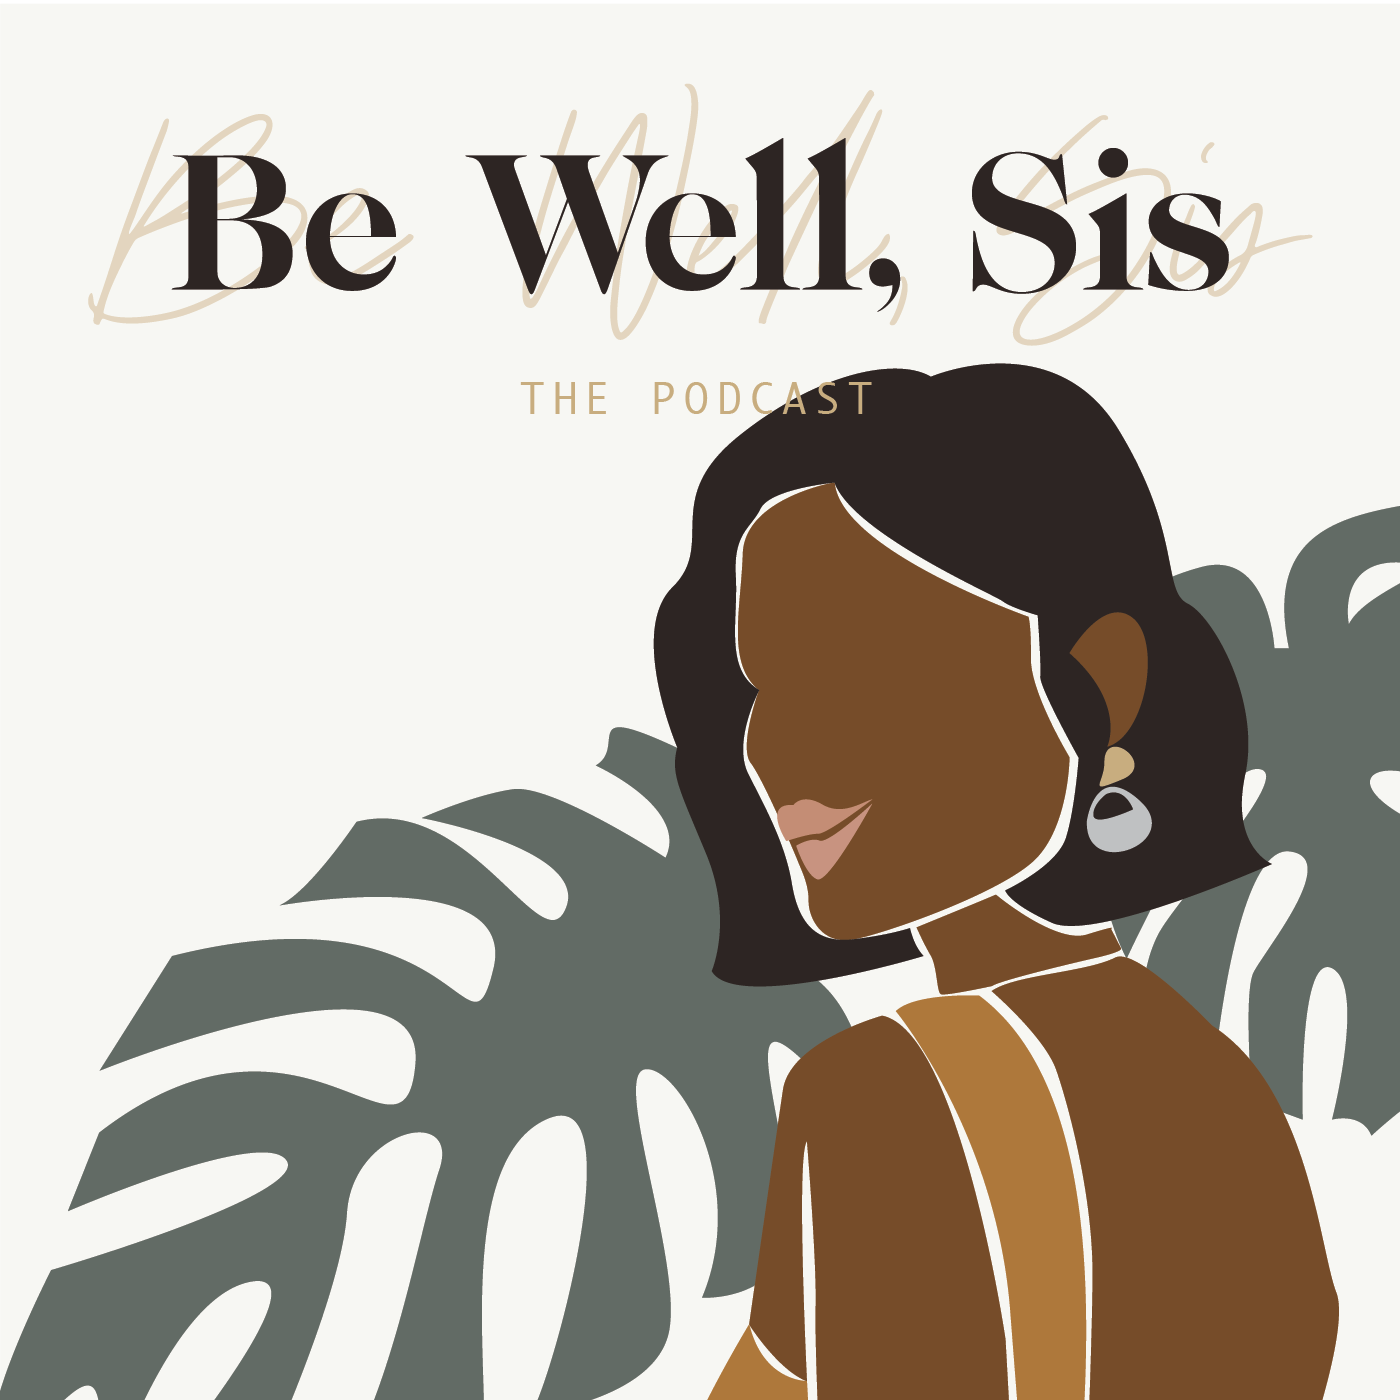 Be Well Sis: The Podcast show image